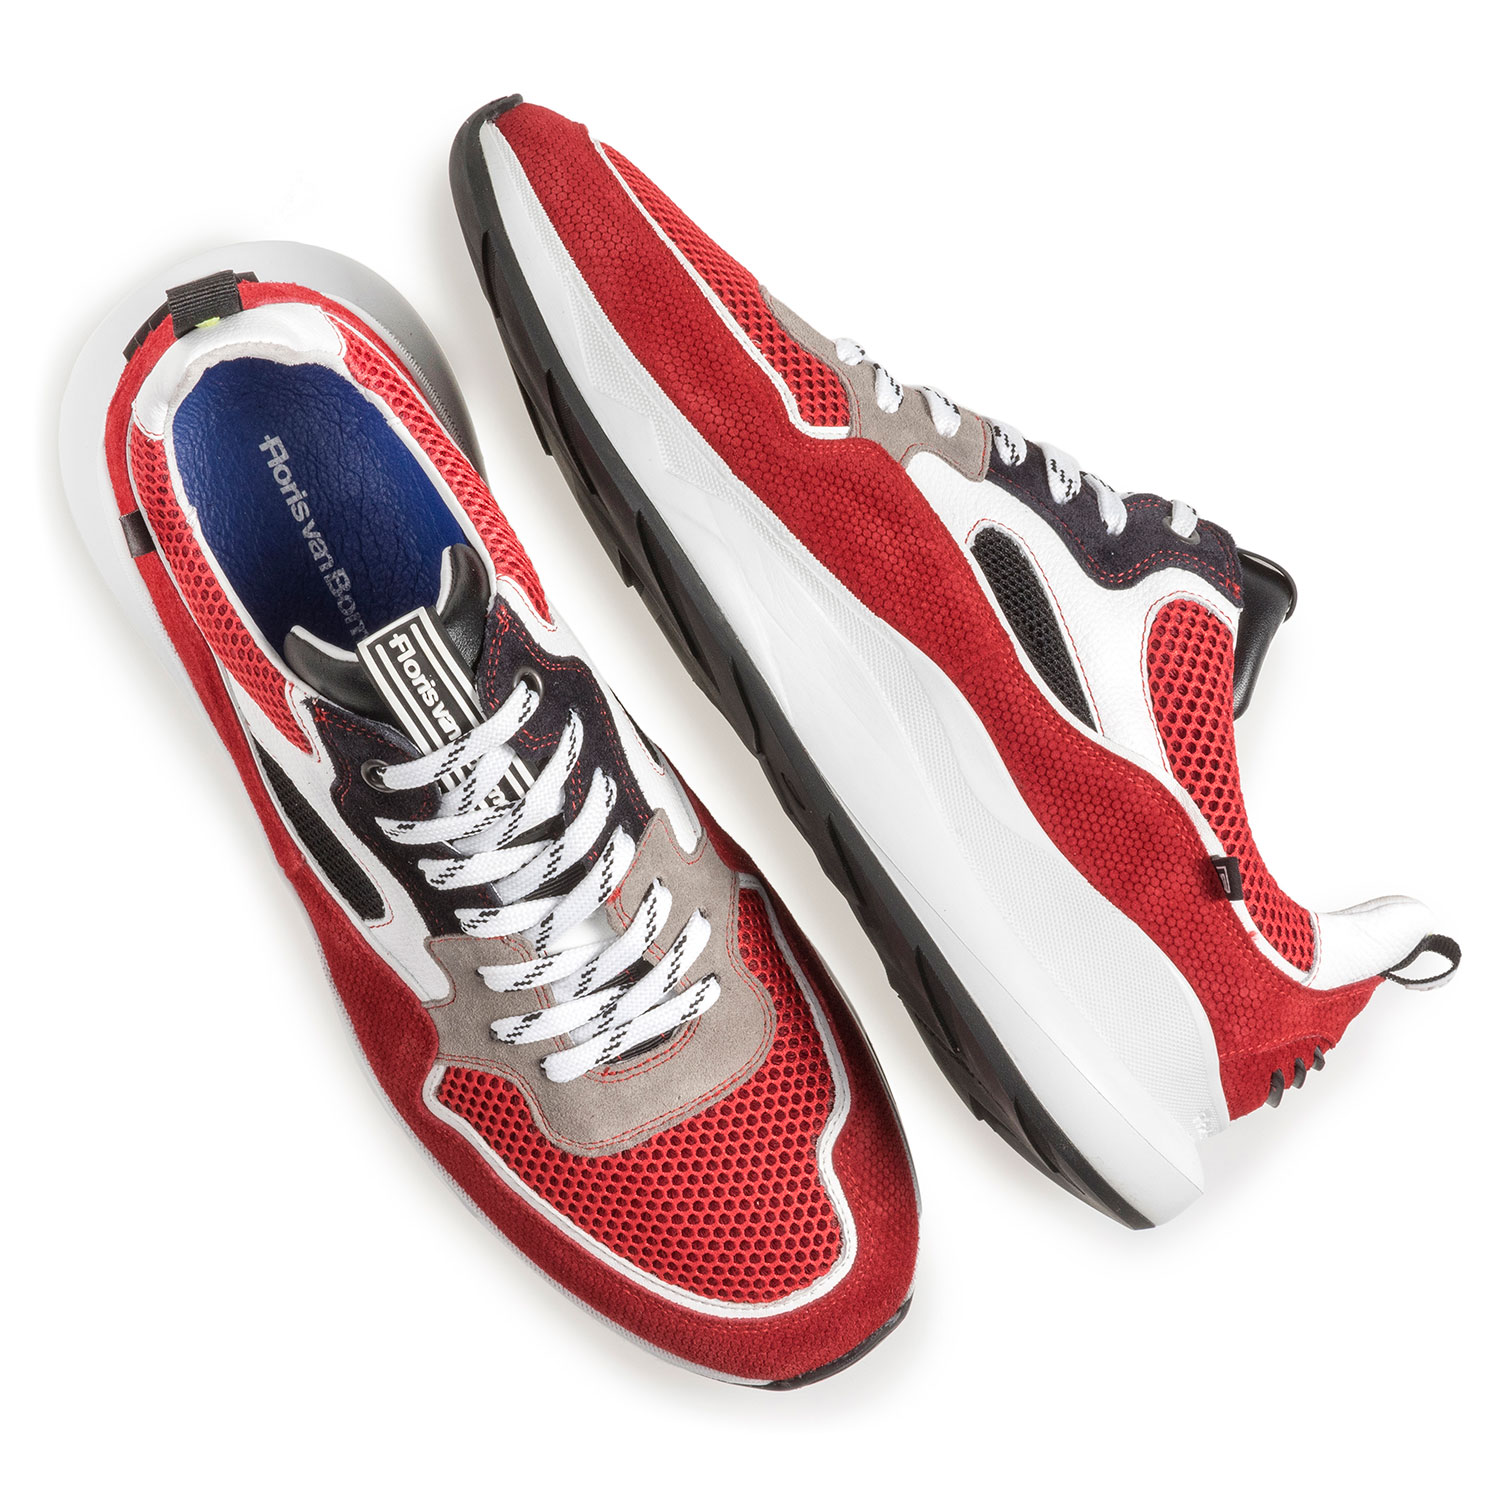 16269/20 - Multi-color suède sneaker rood/wit